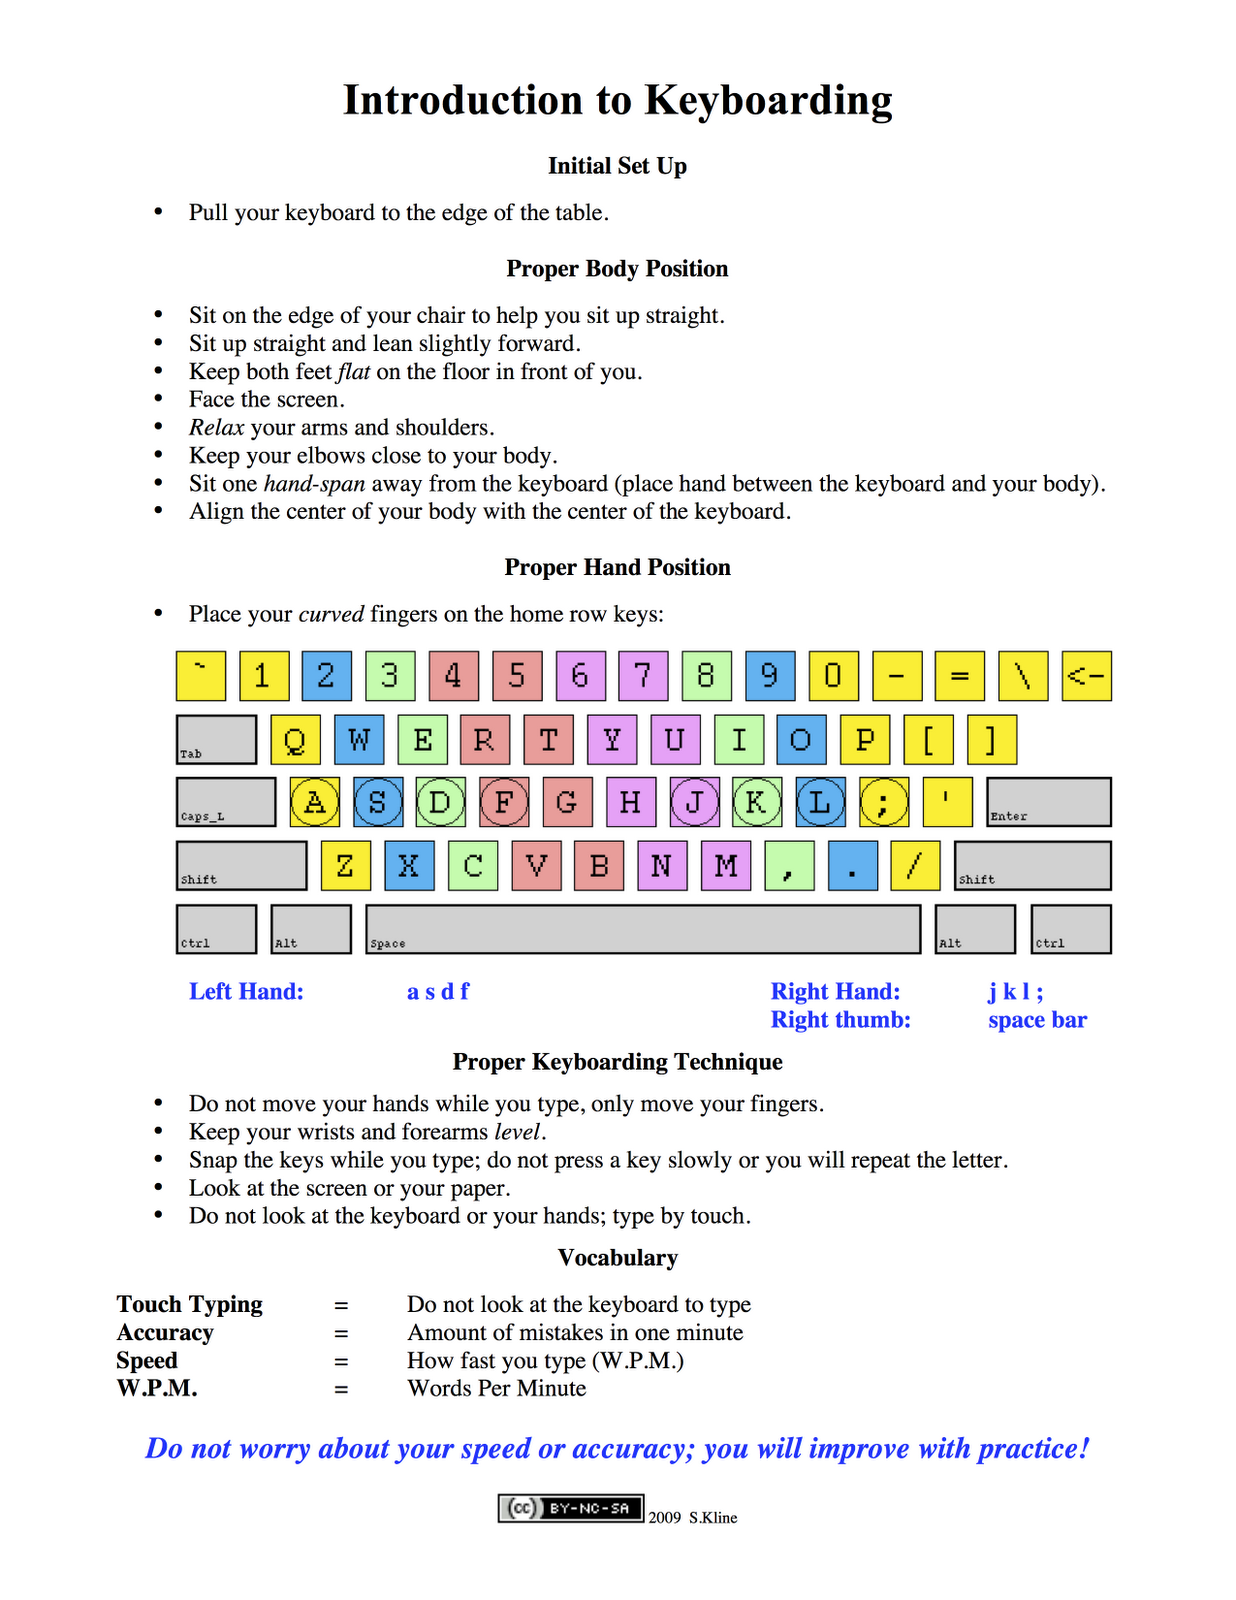 Worksheets Home Row Keys Worksheet home row keys words best key in the word 2017 touchtyping skills worksheet a v1